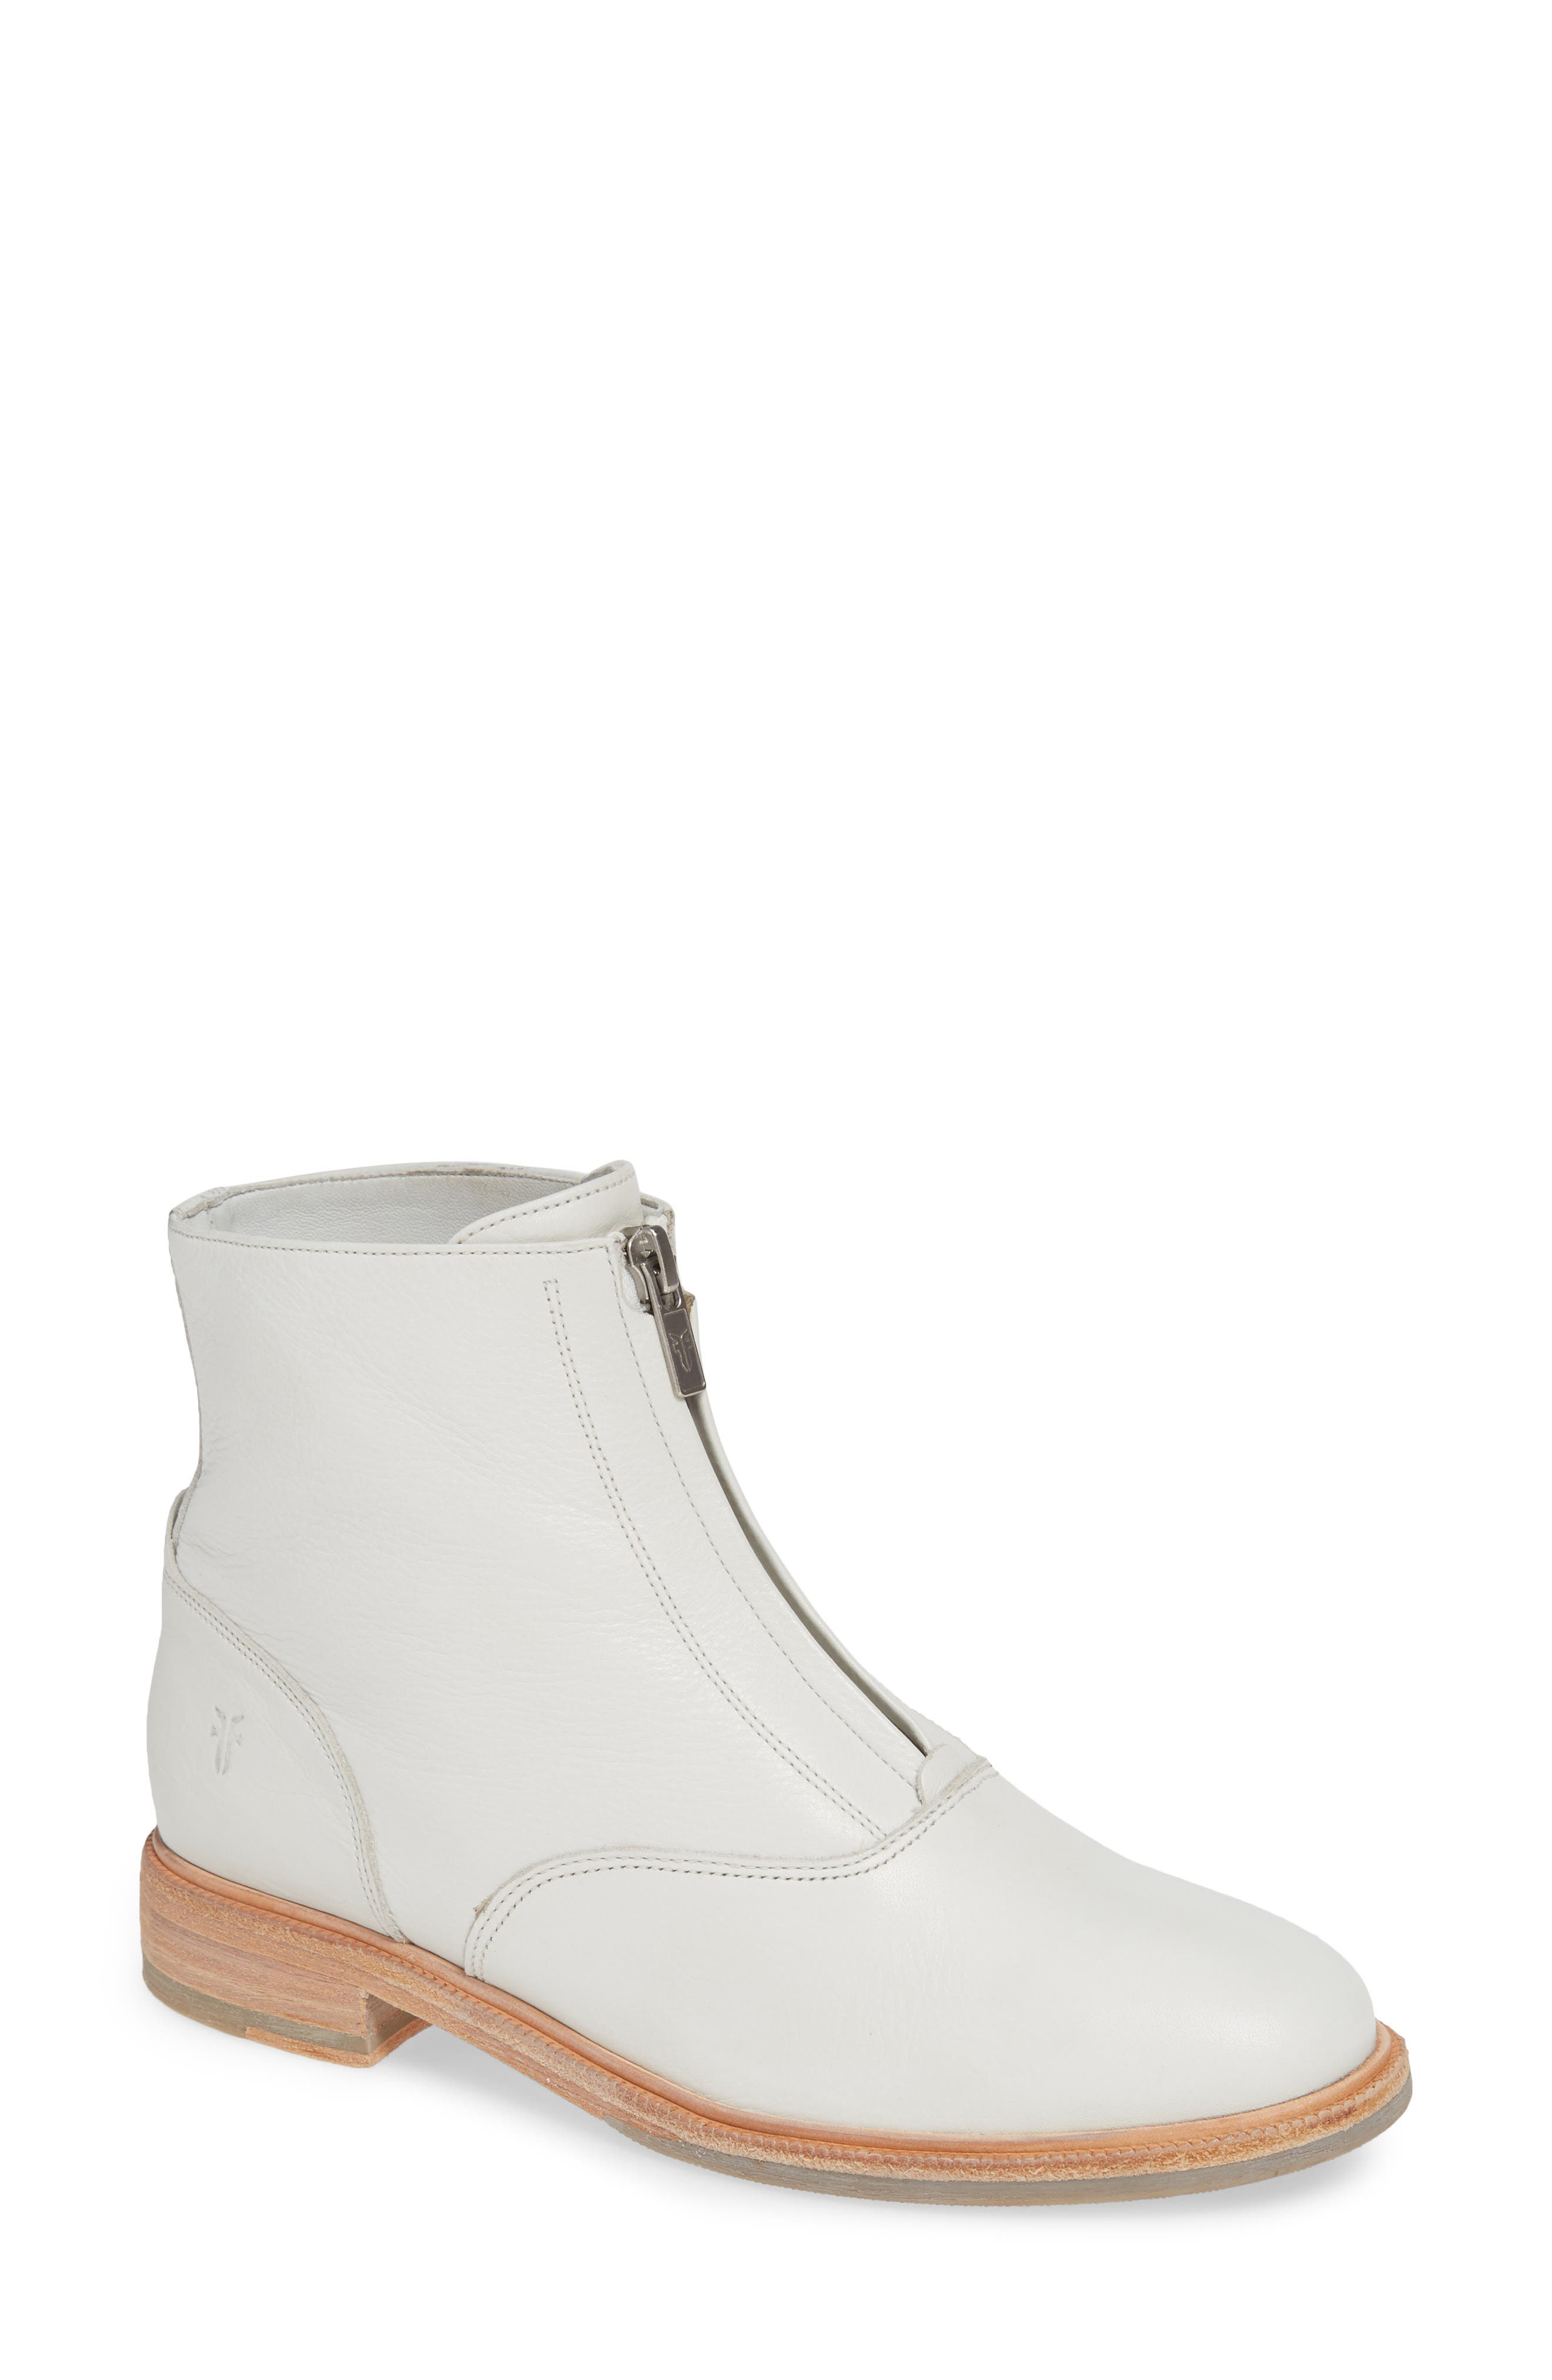 Frye Kelly Zip Bootie- White